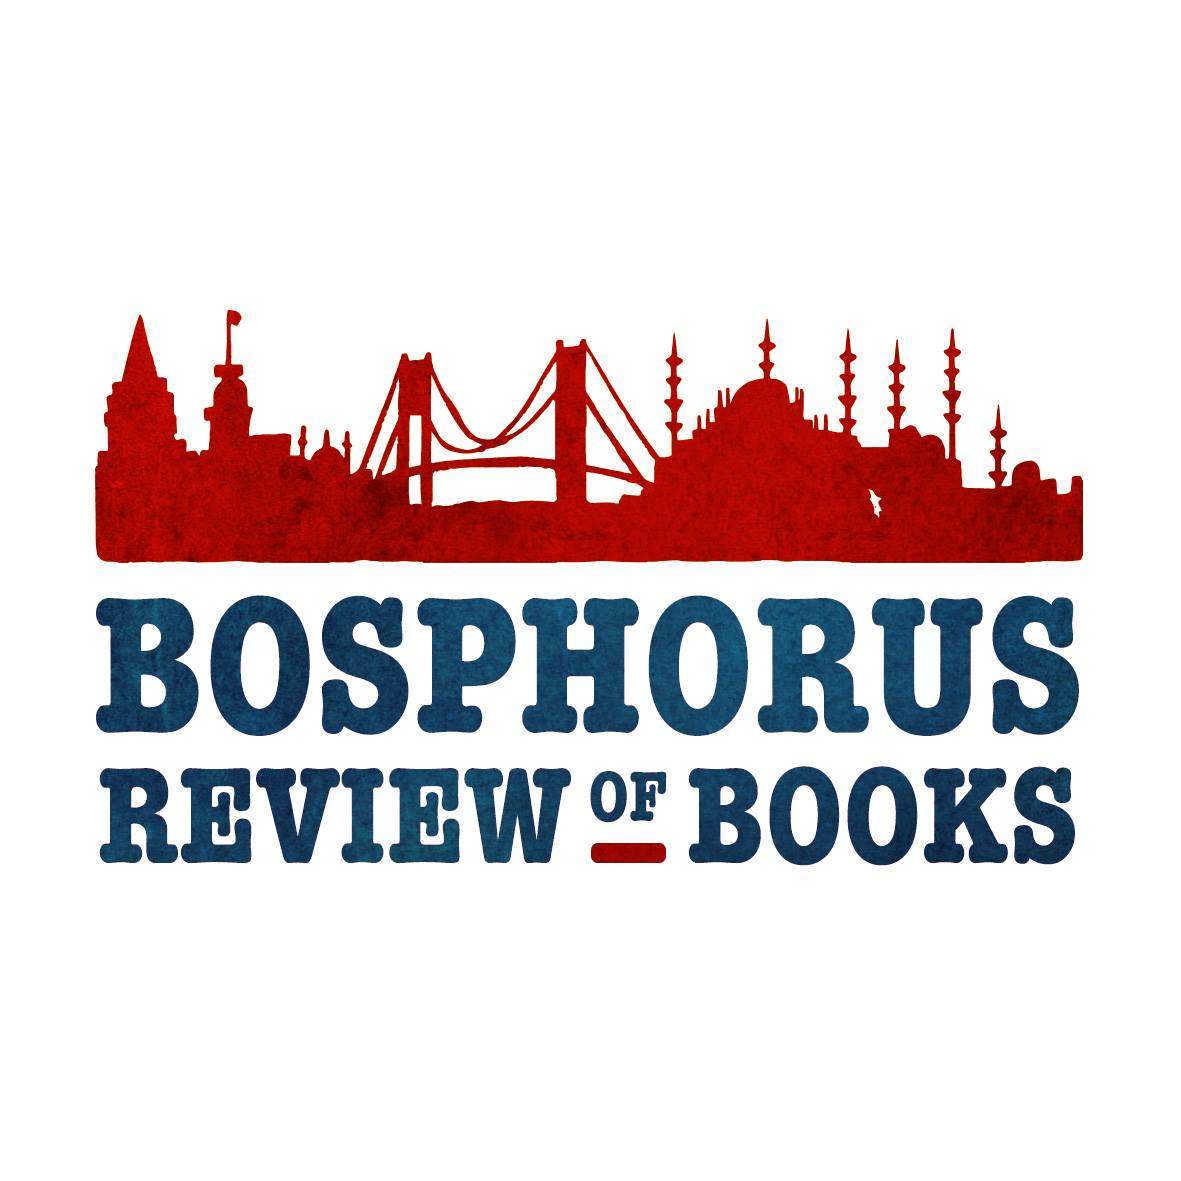 The Bosphorus Review Of Books